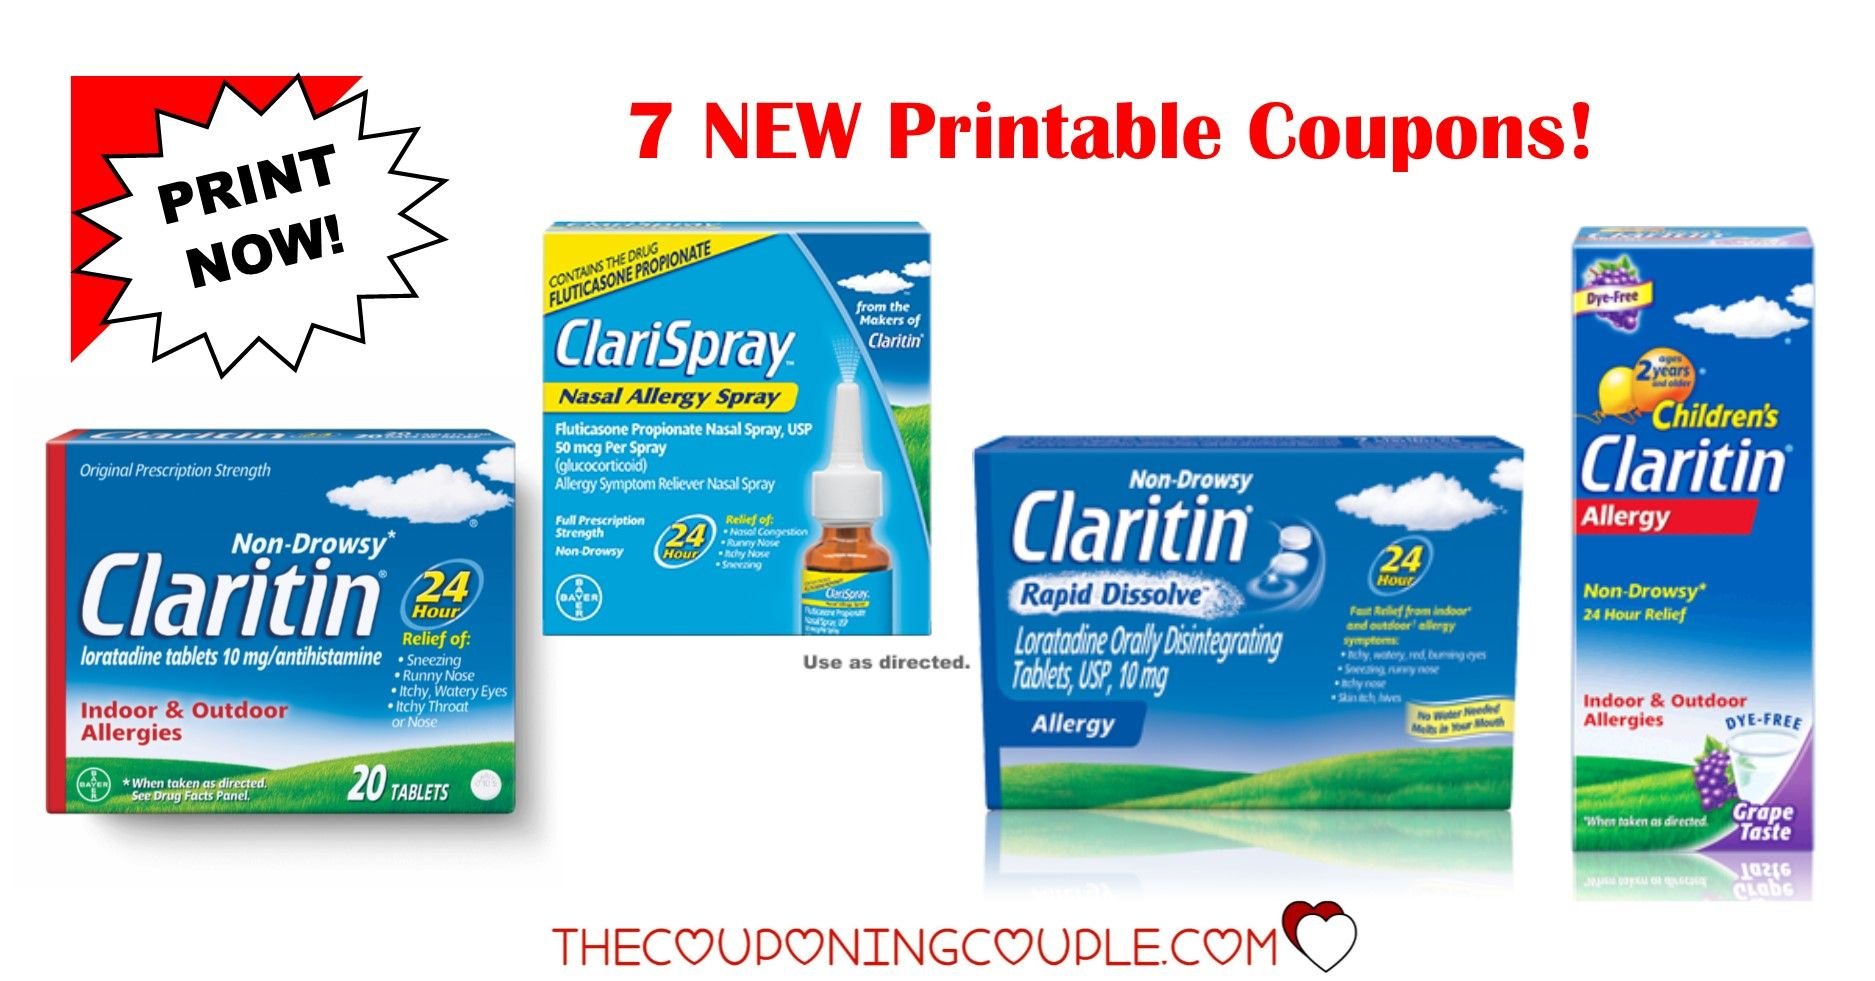 image regarding Claritin Printable Coupons named 6 Claritin Printable Coupon codes ~ $32 inside of Cost savings - PRINT At the moment